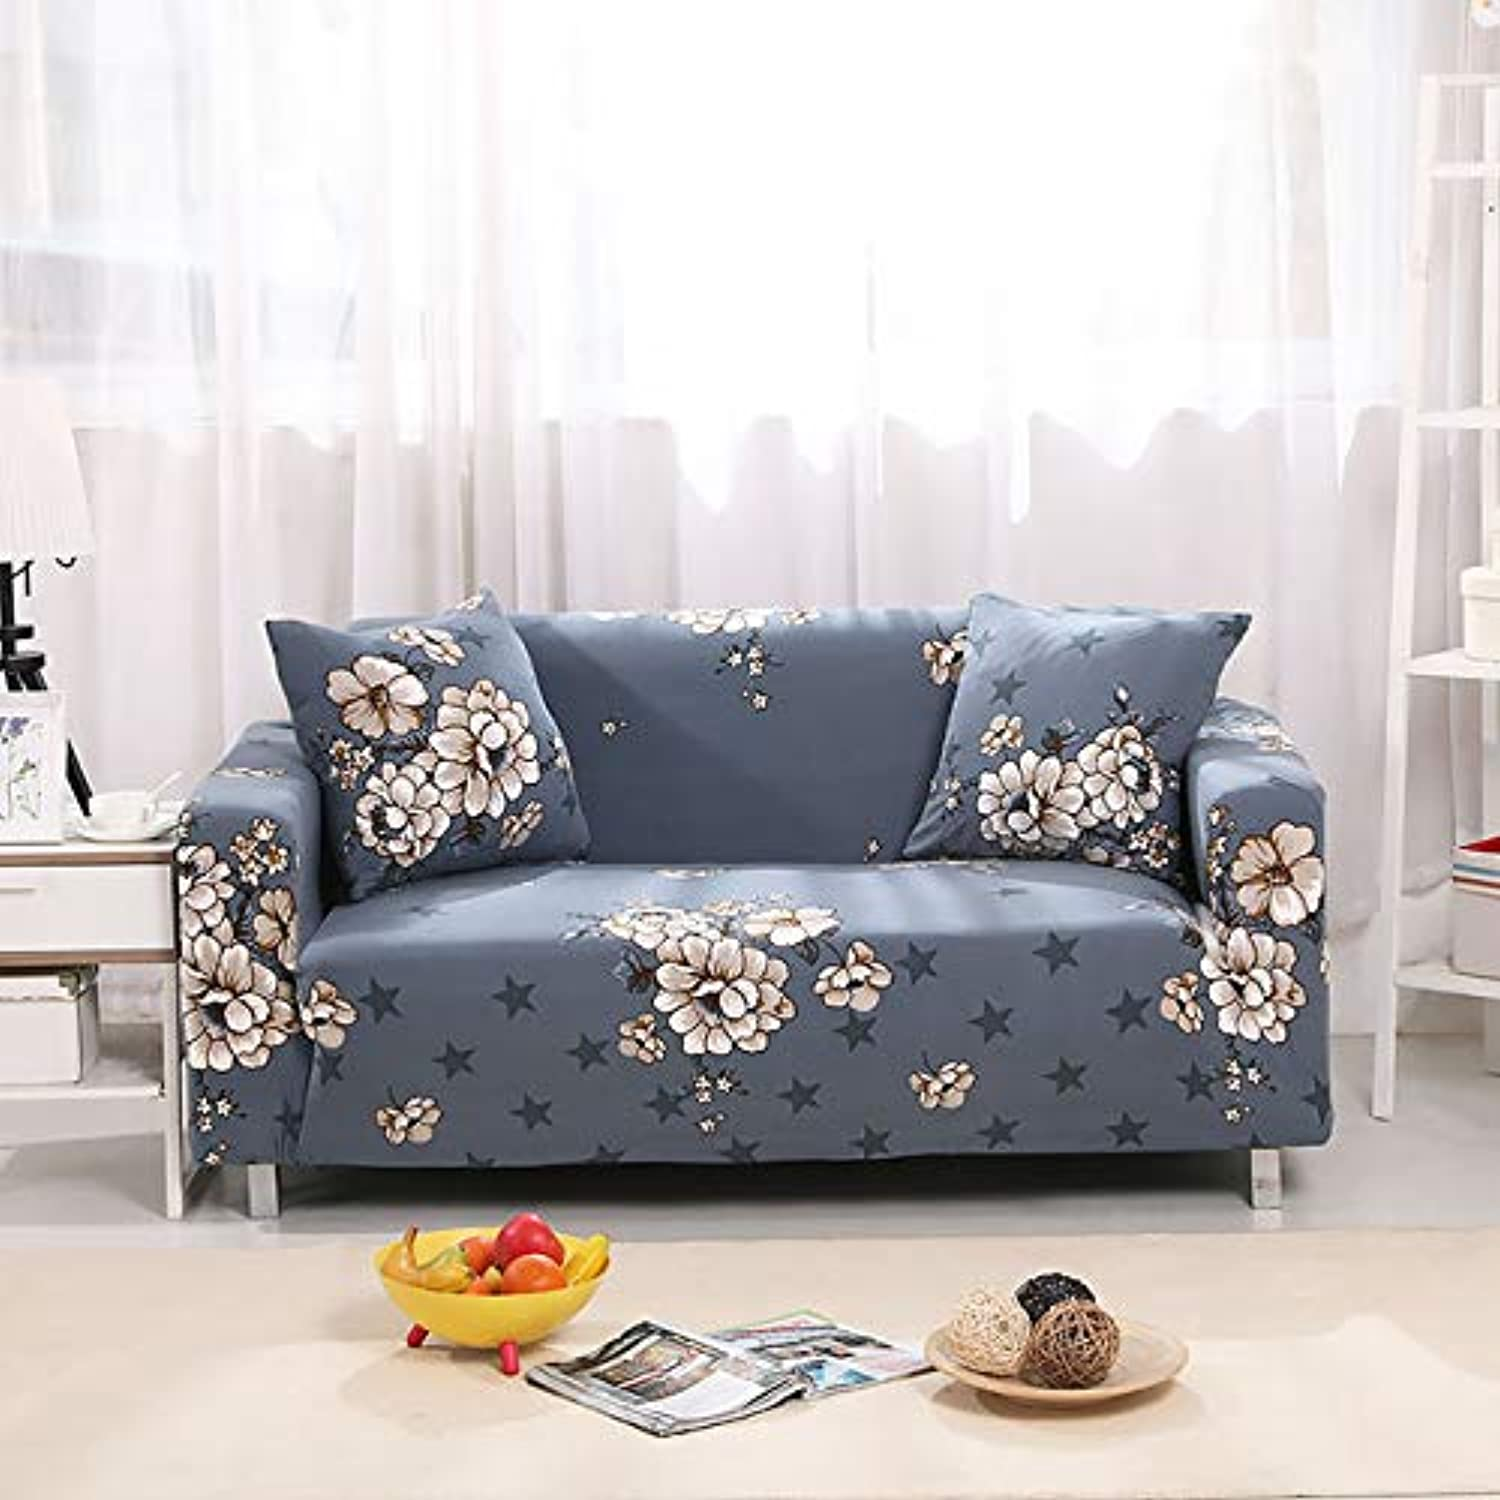 Navy bluee Sofa Cover Tight All-Inclusive Slipcover Elasic Furniture Predector Wrap Single Double Three Four-Seat Sofa Covers 1pc   color 3, 1 seat (90-140cm)